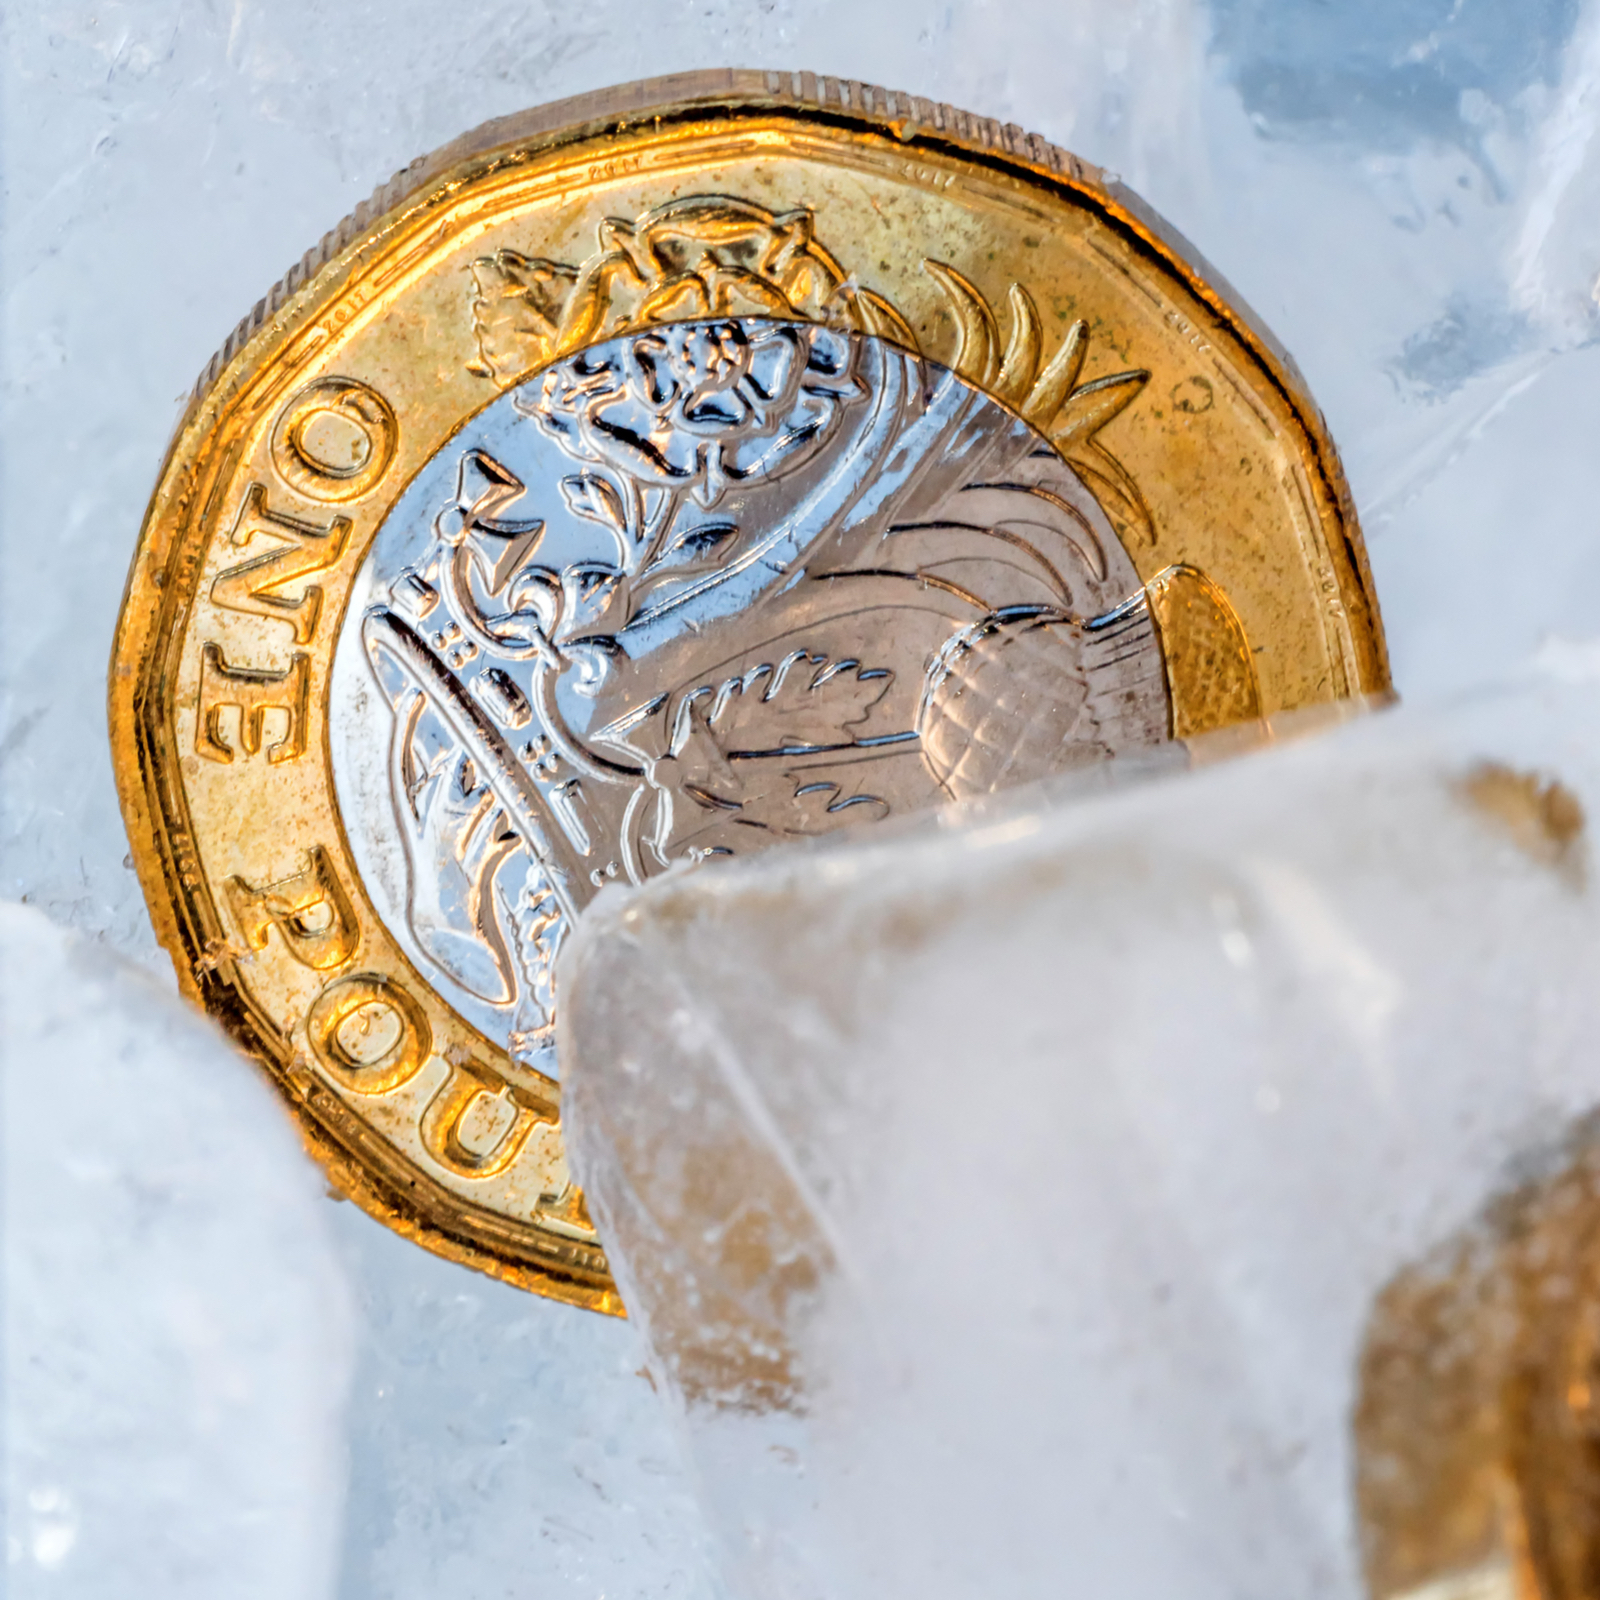 Funds Frozen, Account Closed: UK Banks Target Cryptocurrency Owners